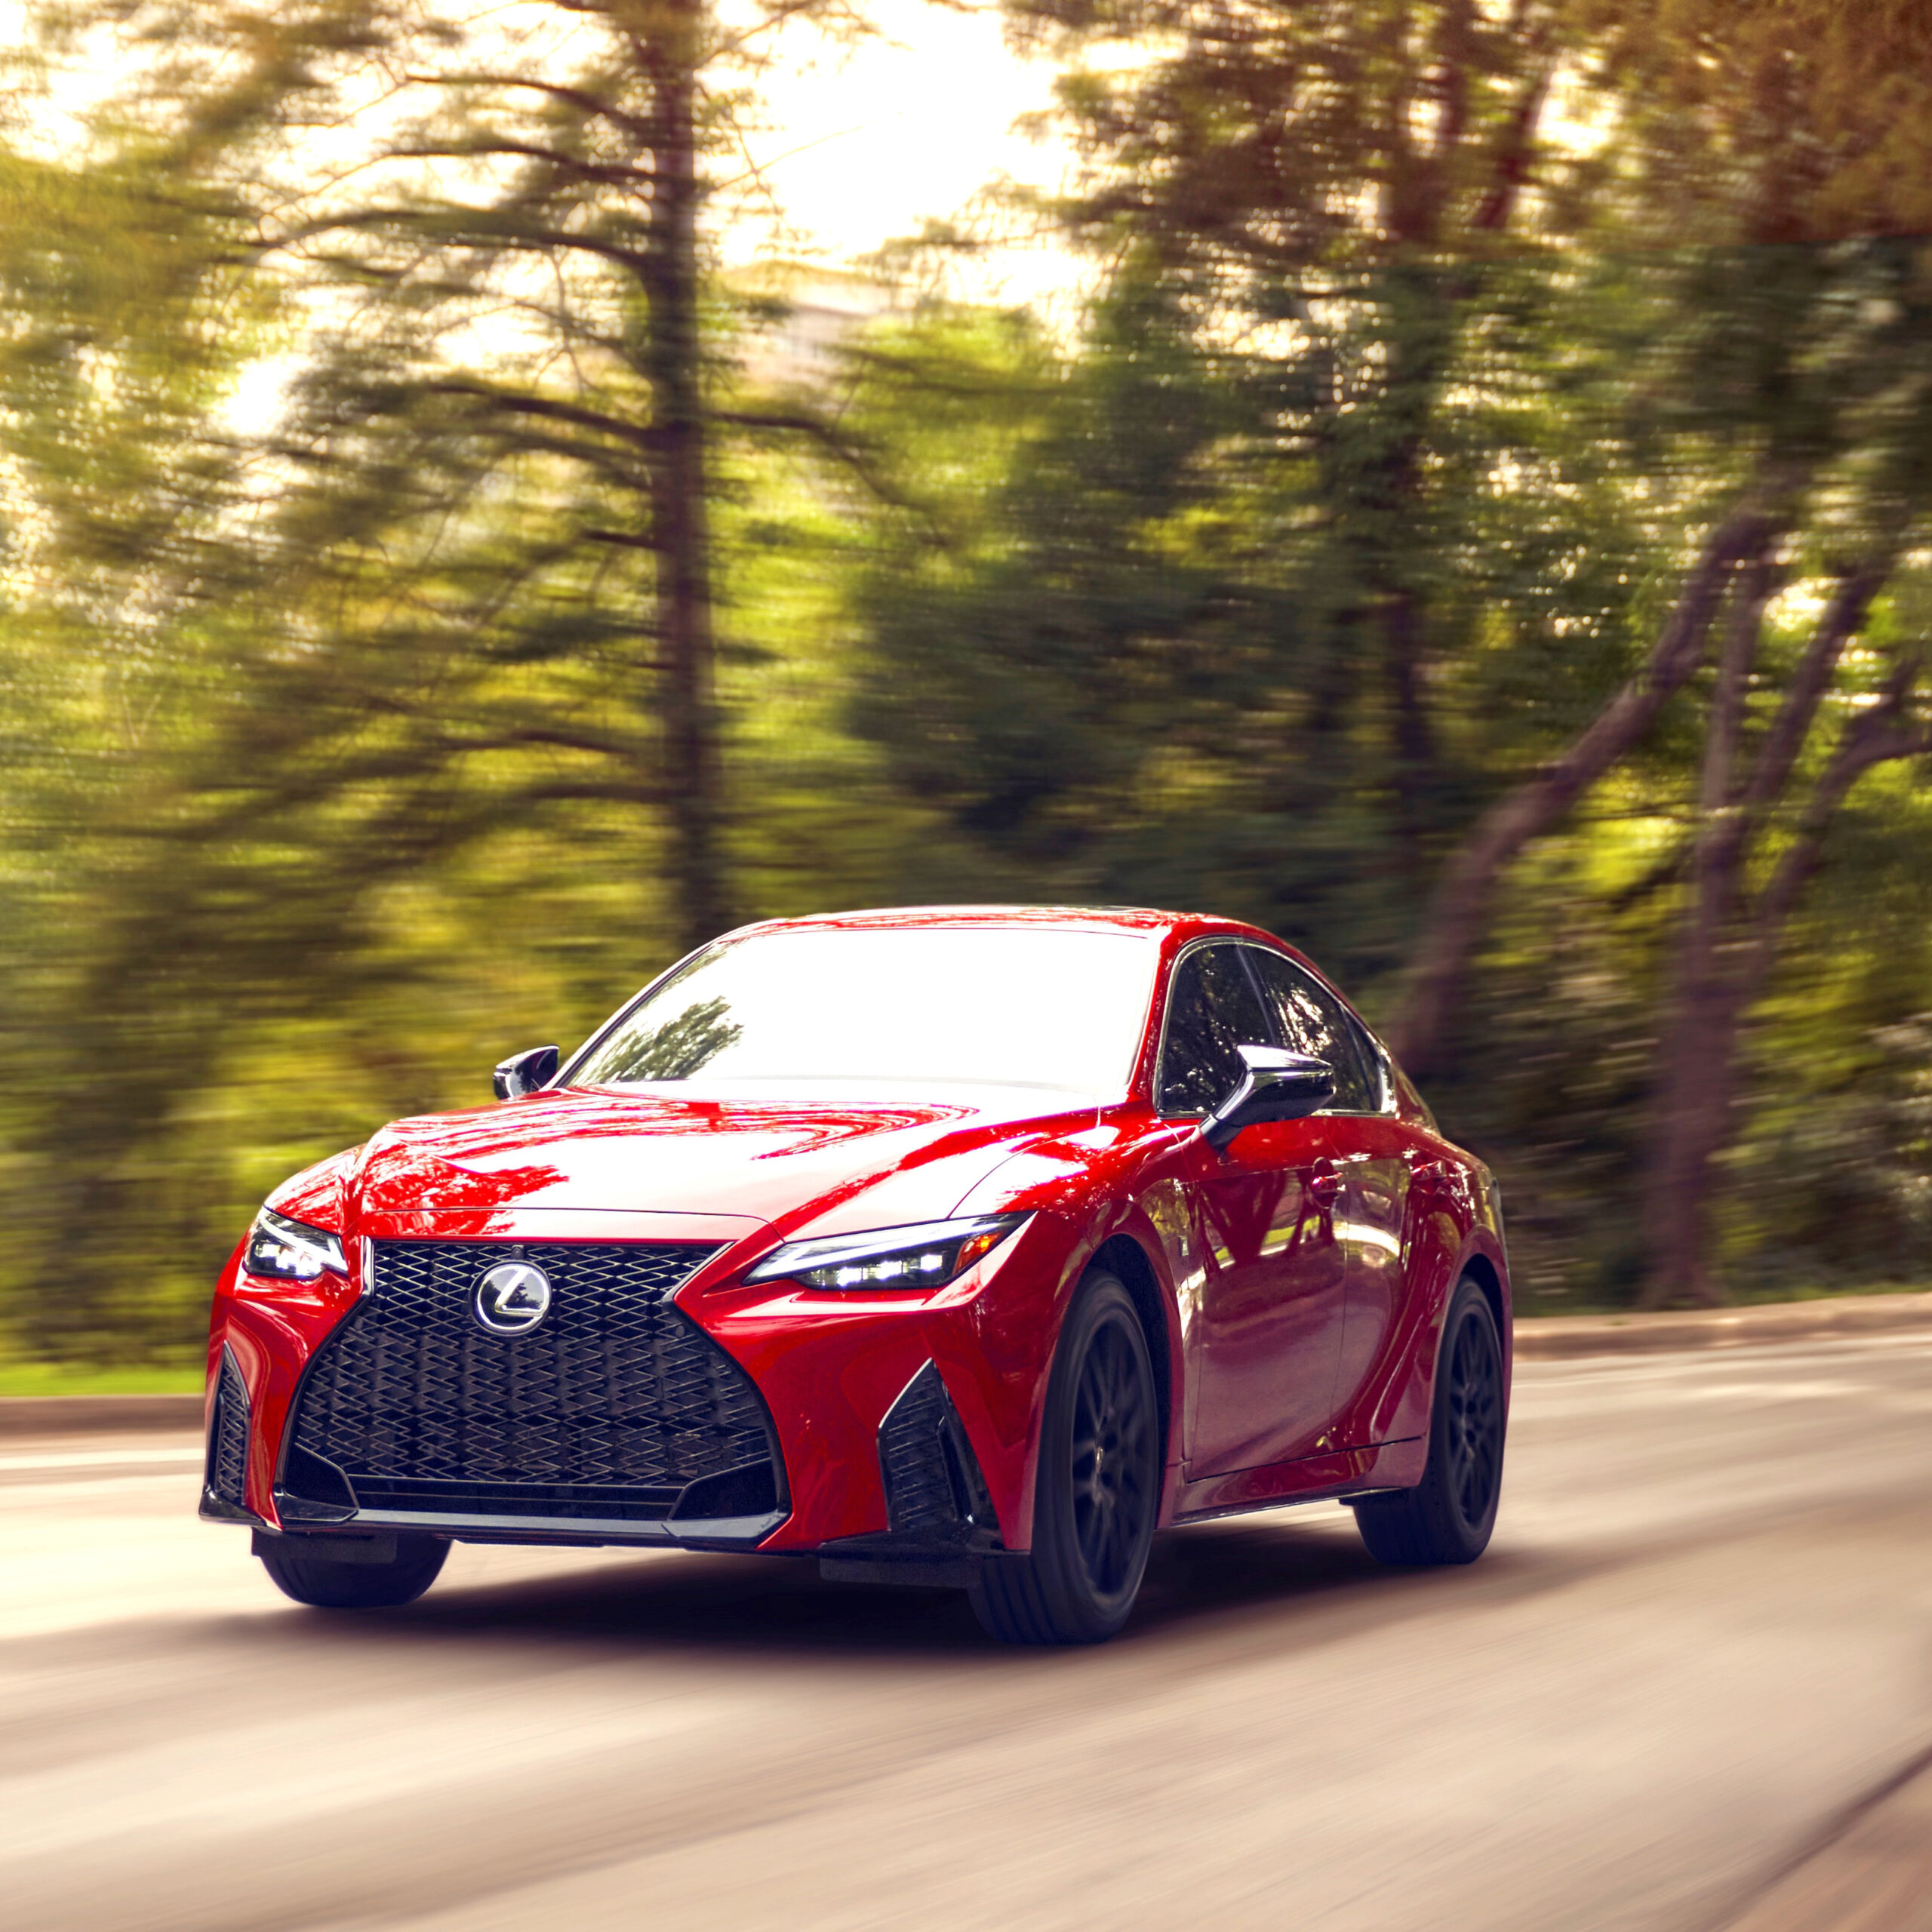 Lexus Retreats In Motion image by Lexus for use by 360 Magazine